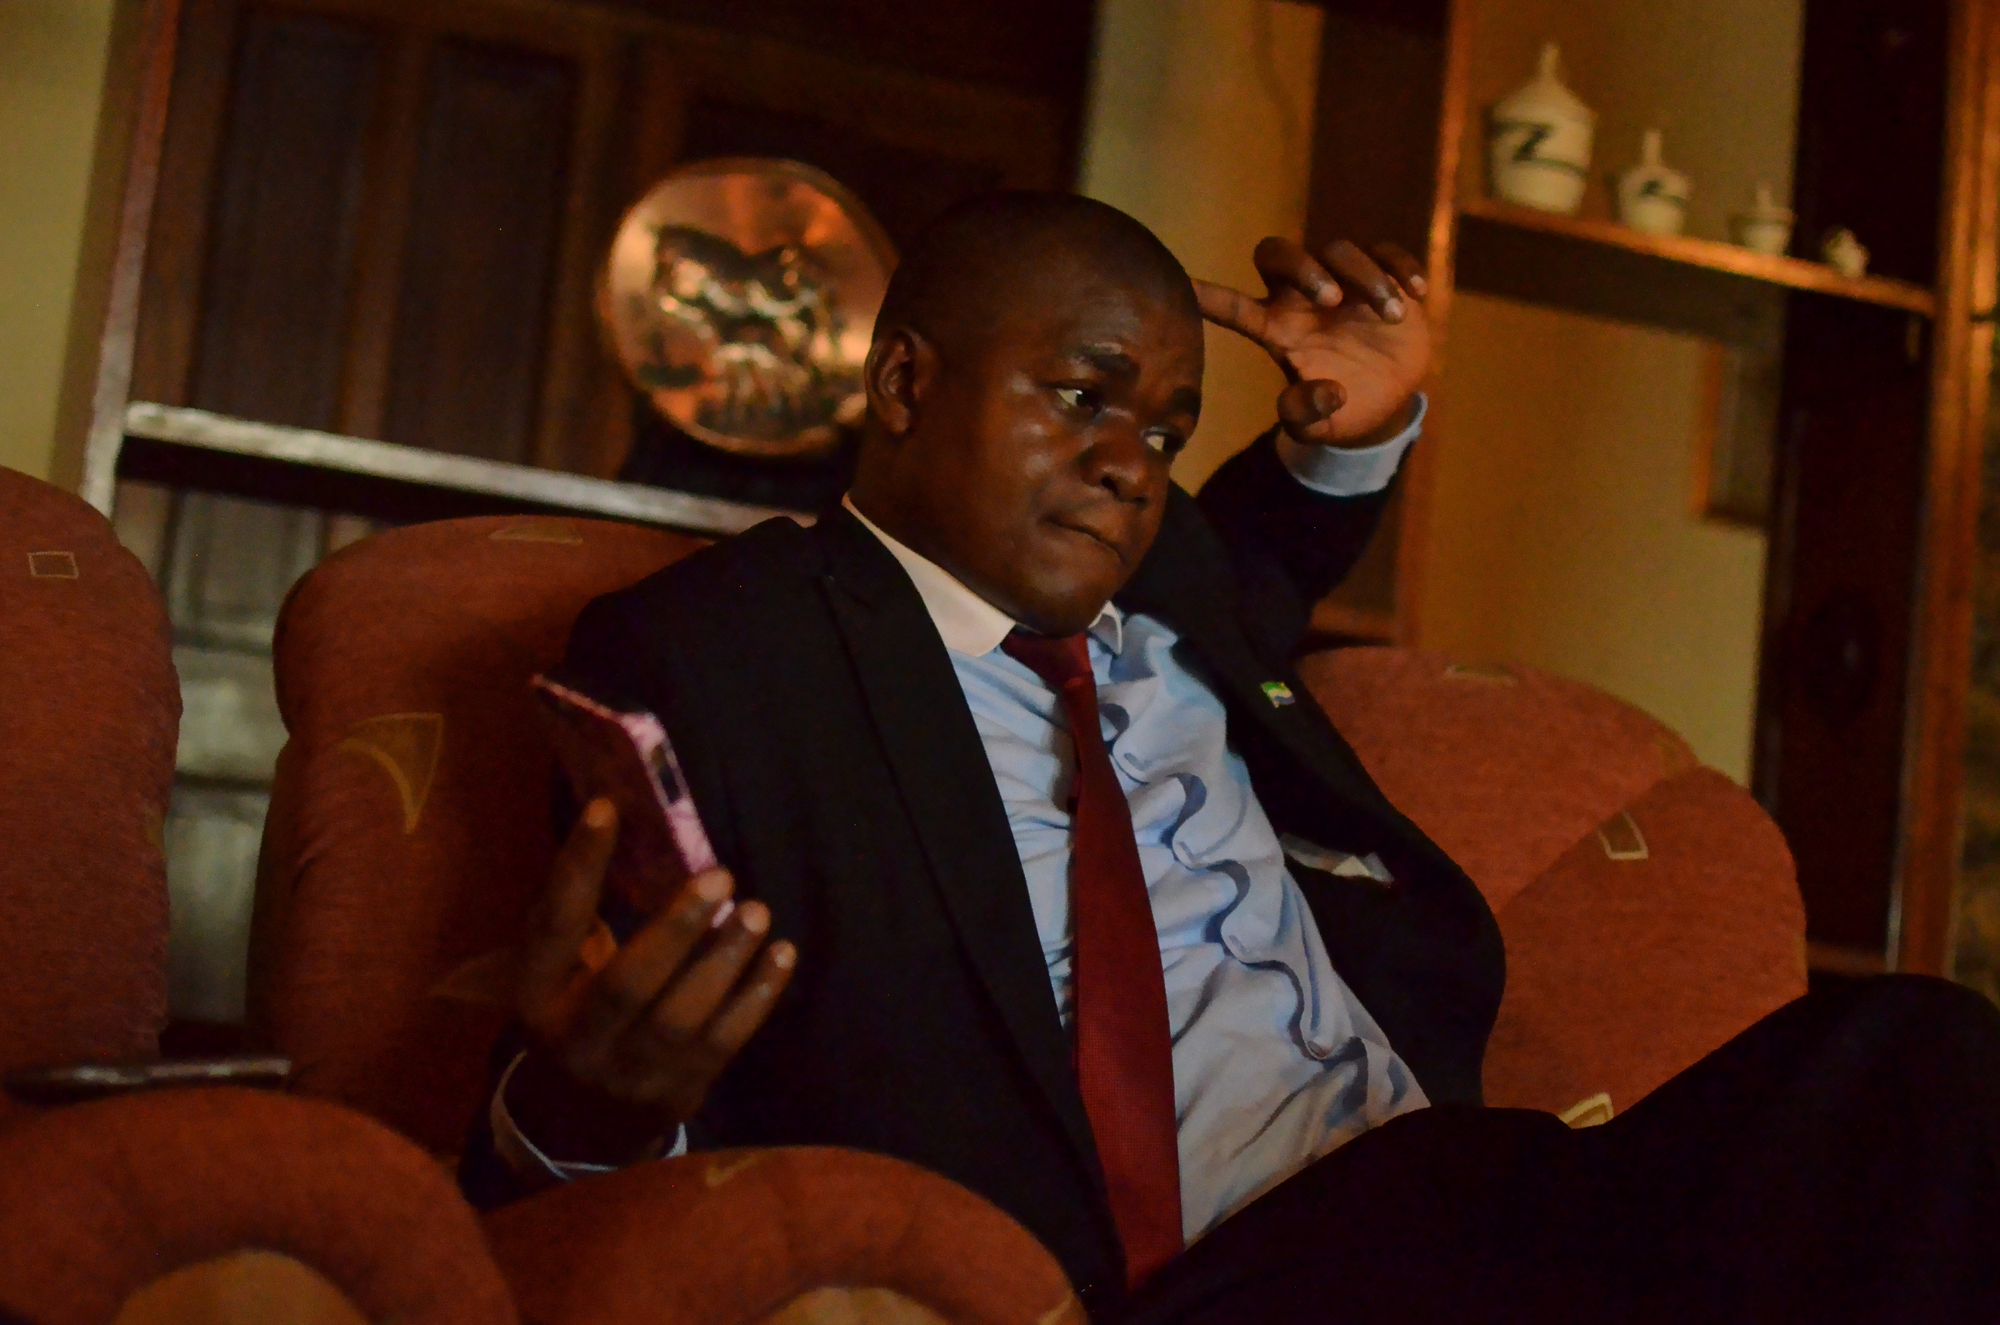 Koidu Mayor Saa Emmerson Lamina was suspended in February. At the time, he was in the process of taking Octea to court, arguing that the company should pay property taxes.